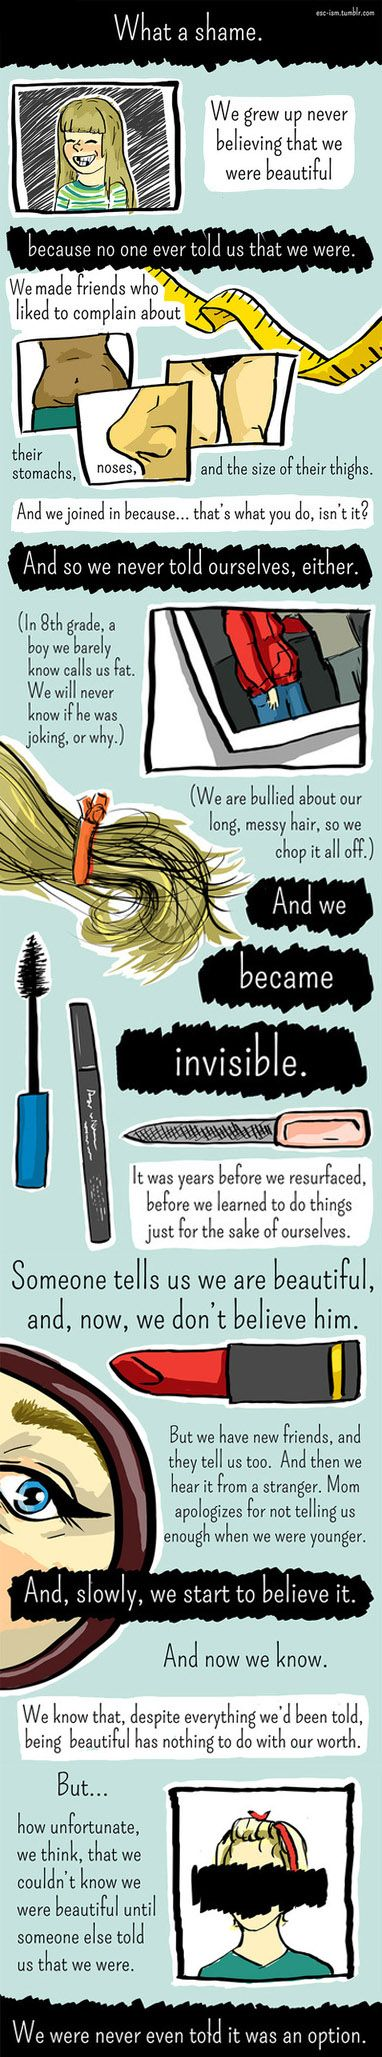 Our outer beauty does not define us